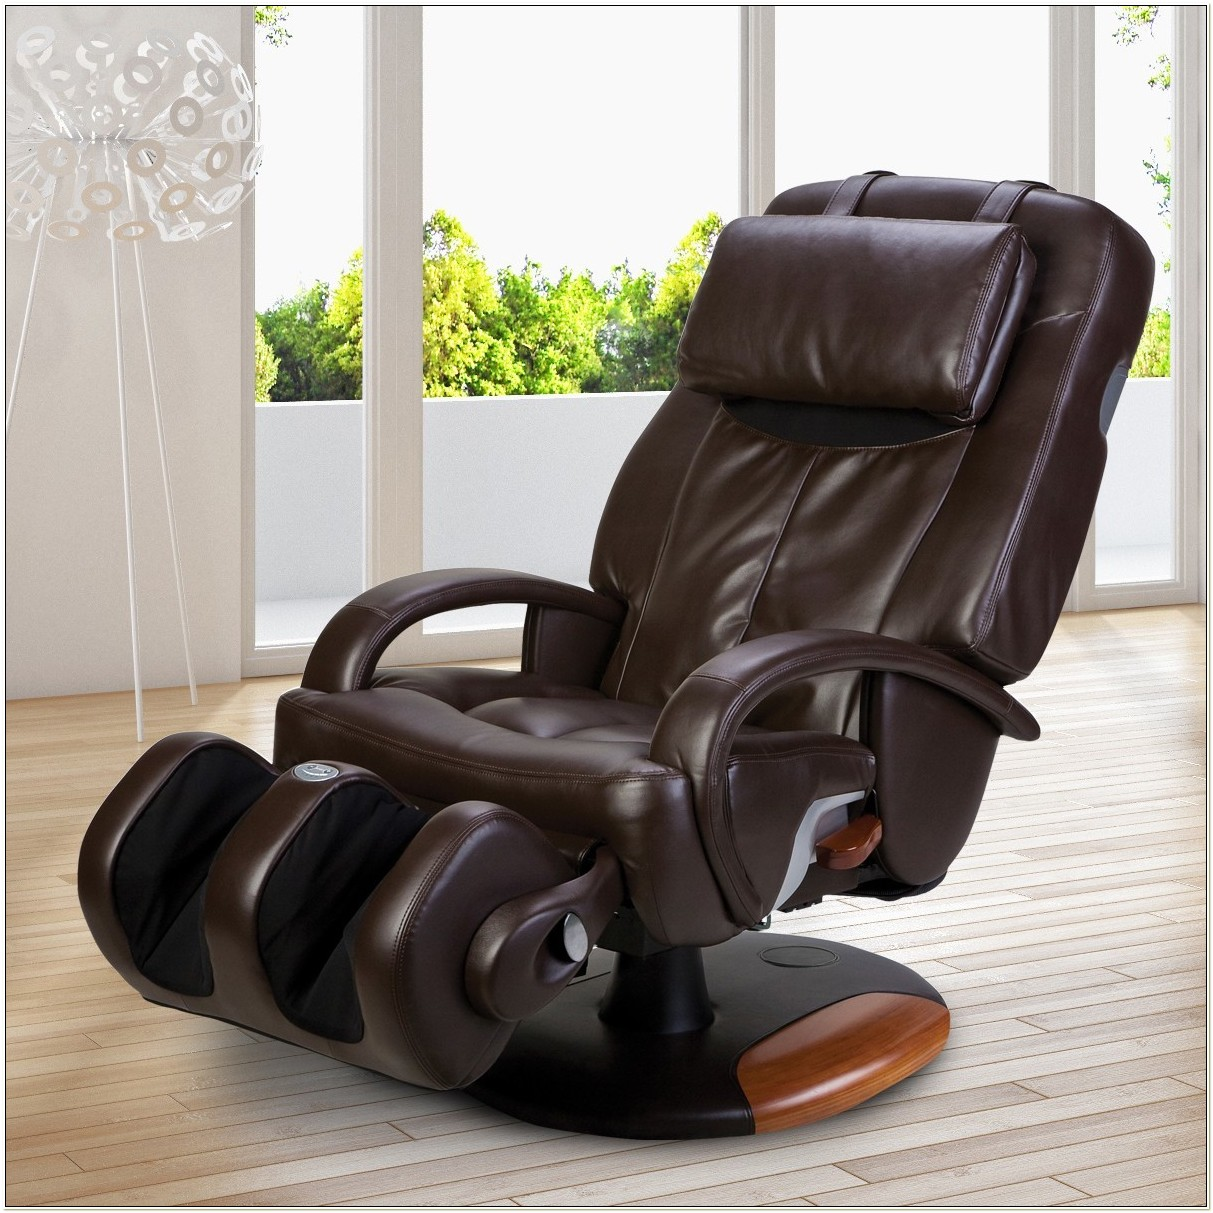 Human Touch Robotic Massage Chair Ht 275